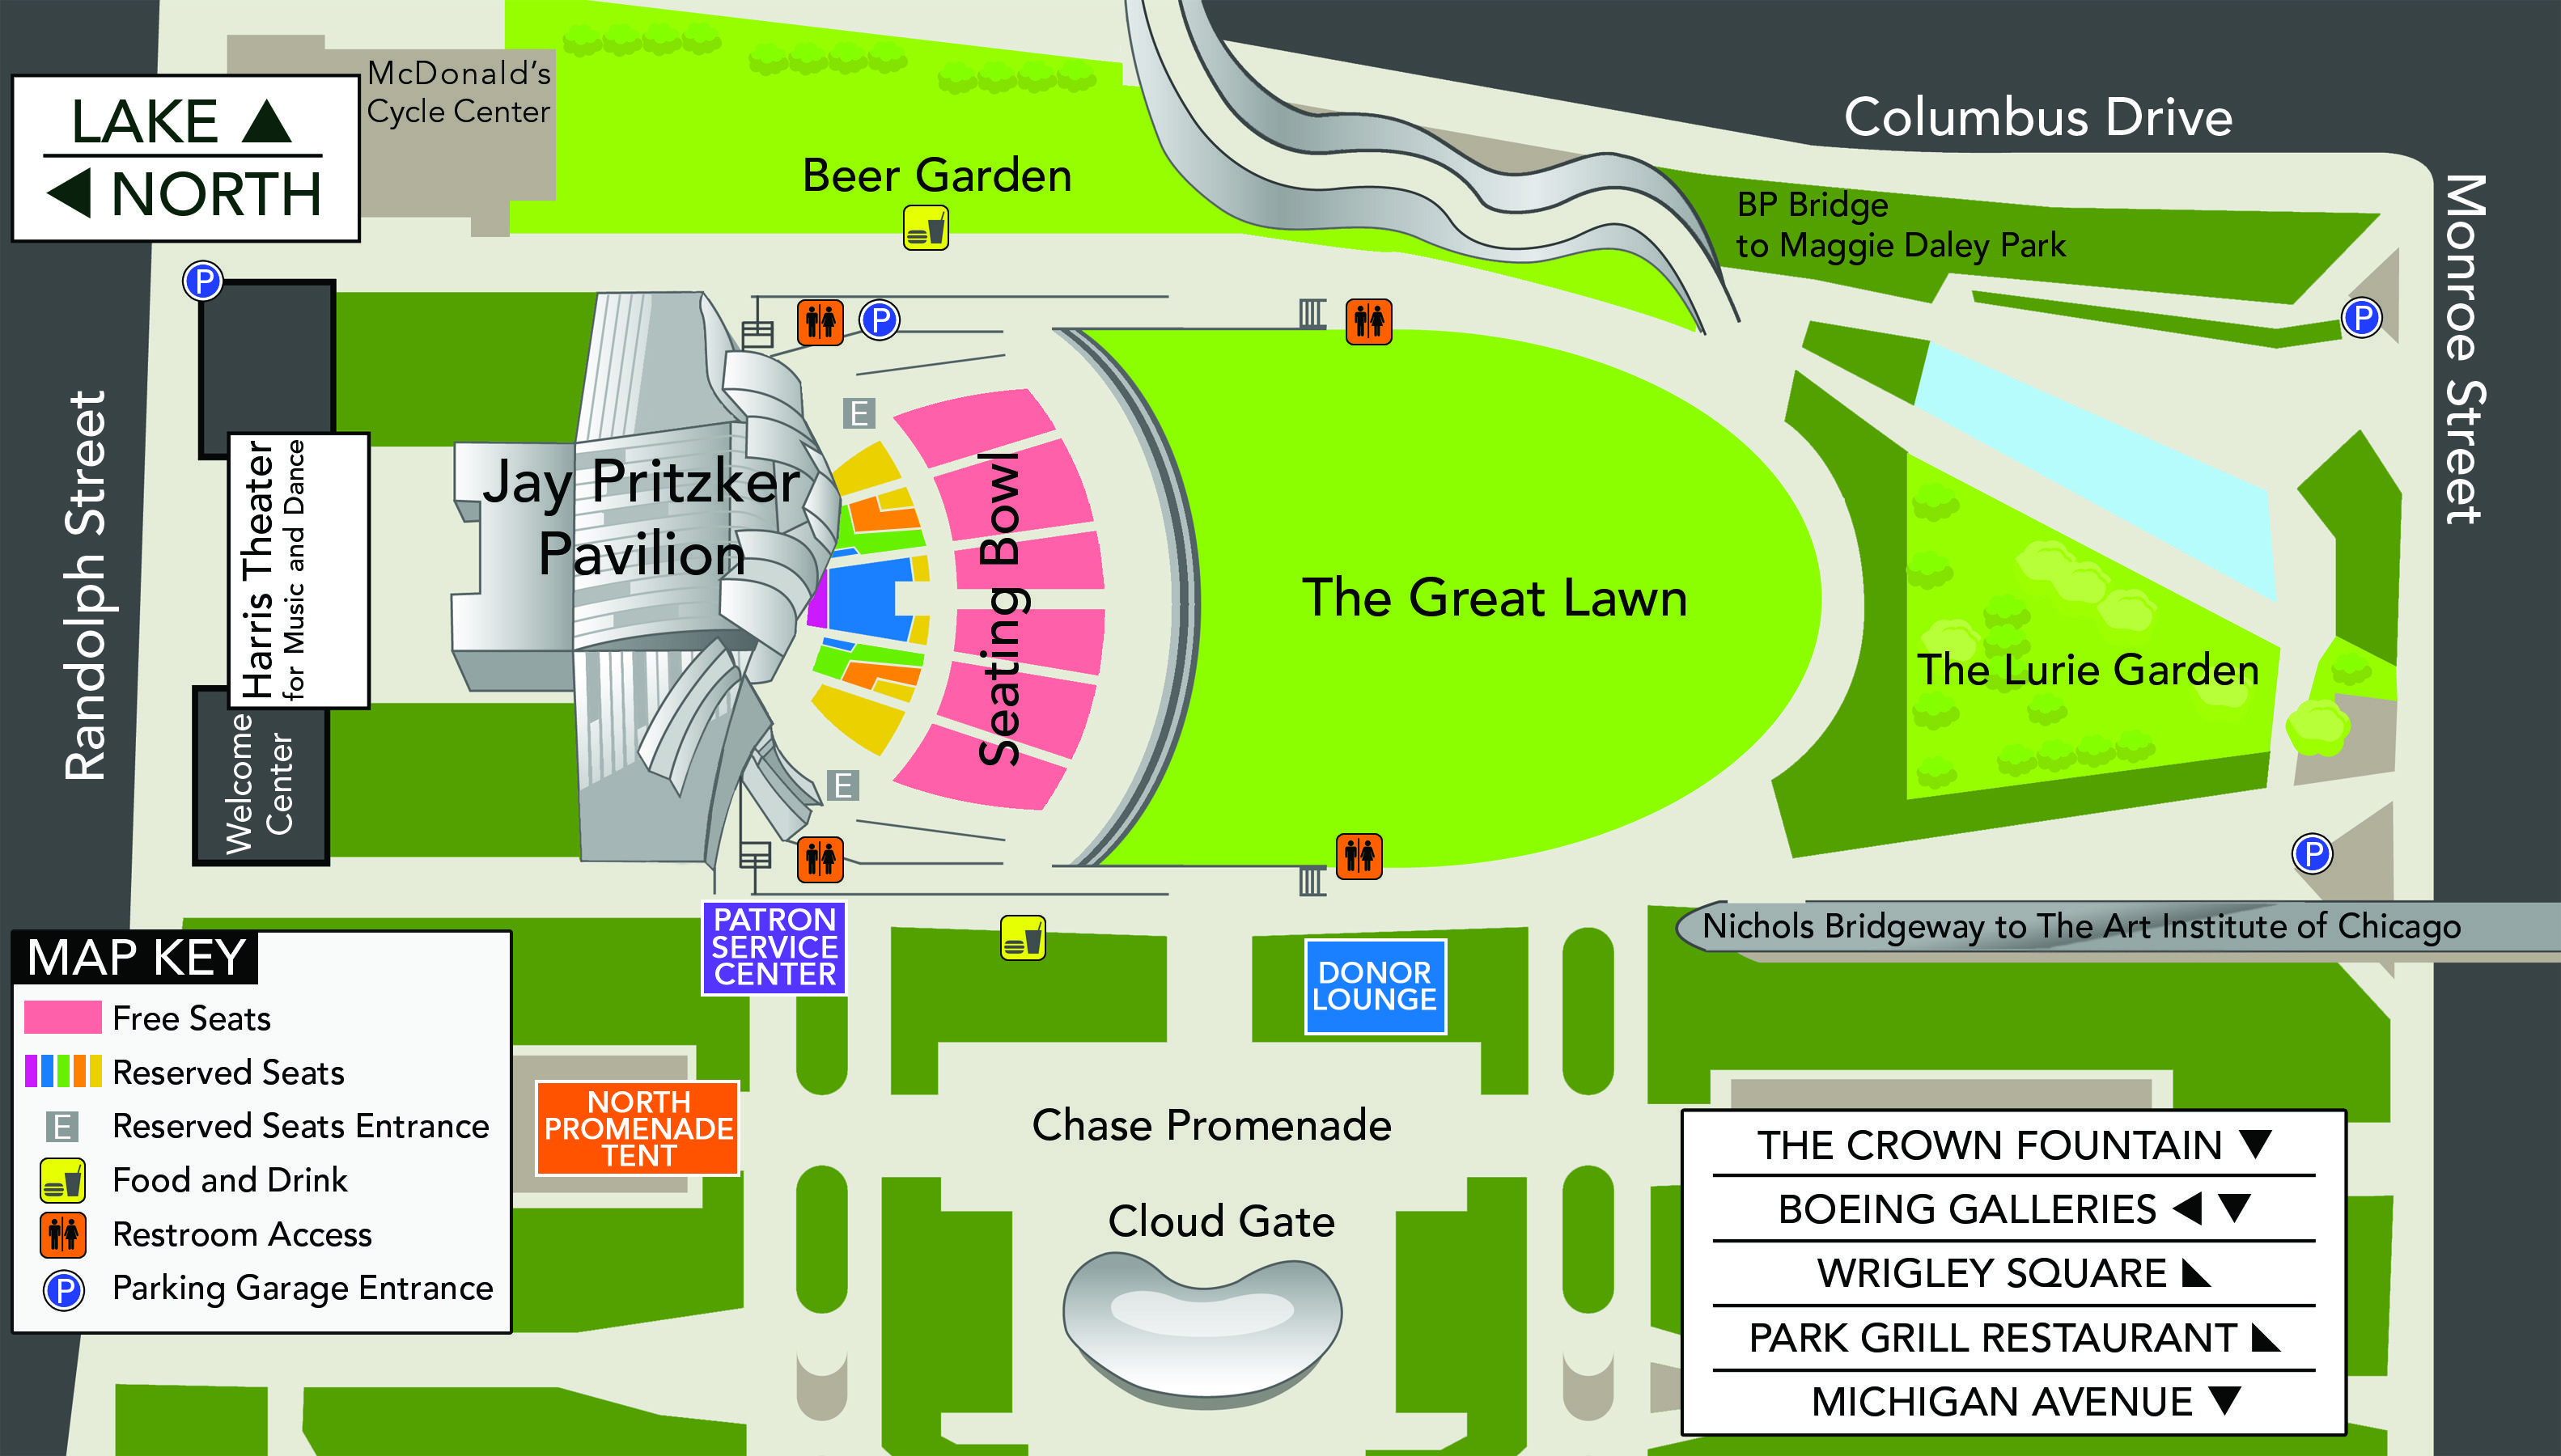 Map Of Millennium Park Plan Your Experience The Grant Park Music Festival Chicago Vacation Millennium Park Chicago Map